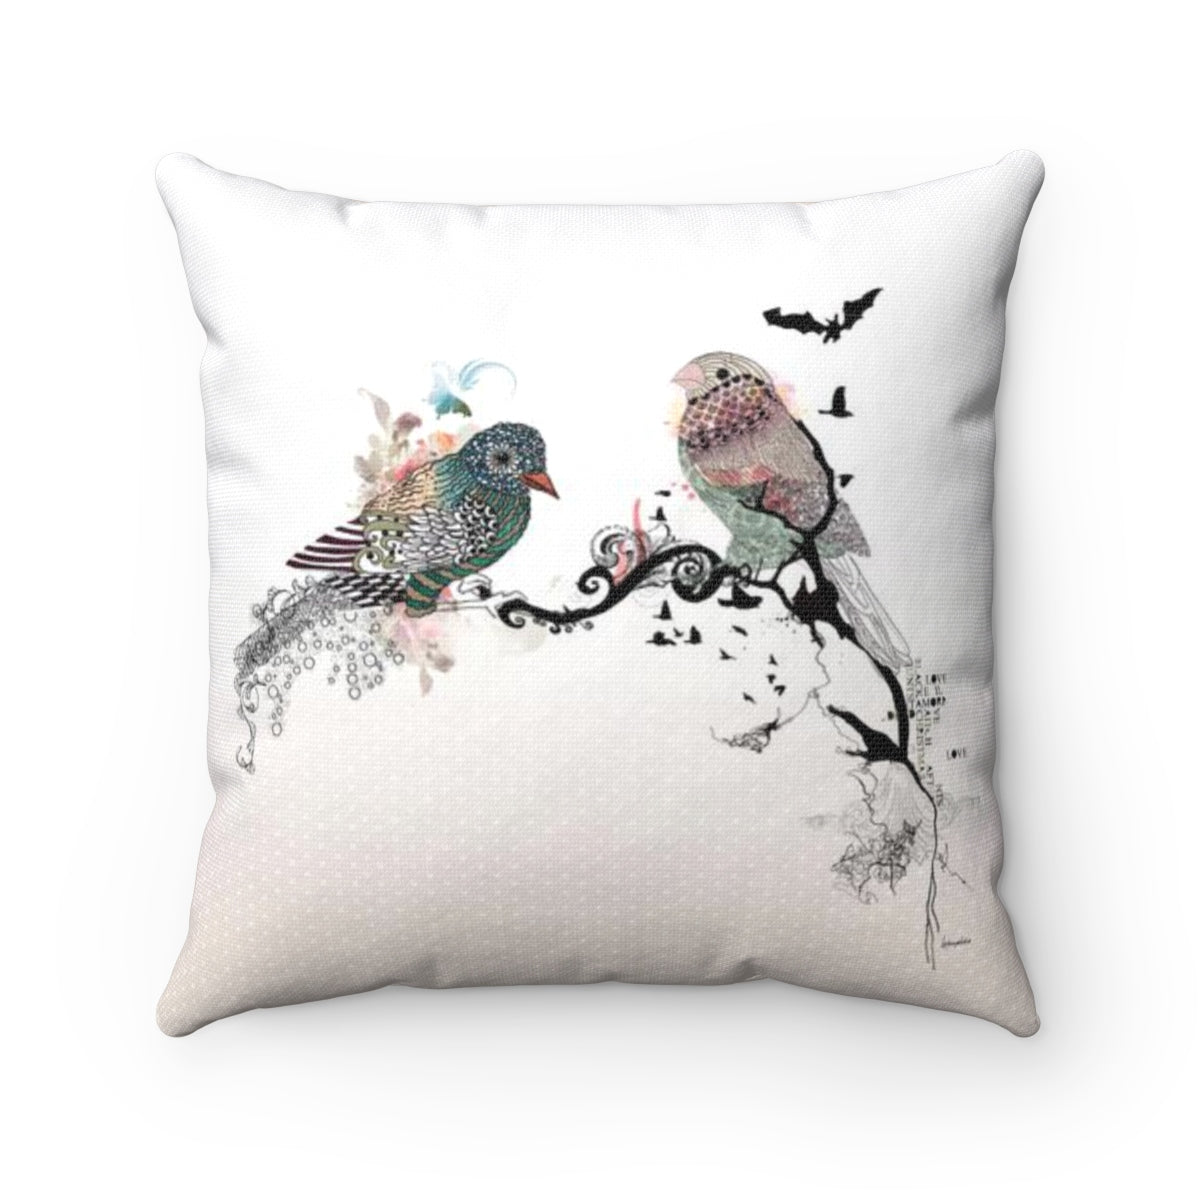 Birds Throw Pillow - Liz Kapiloto Art & Design